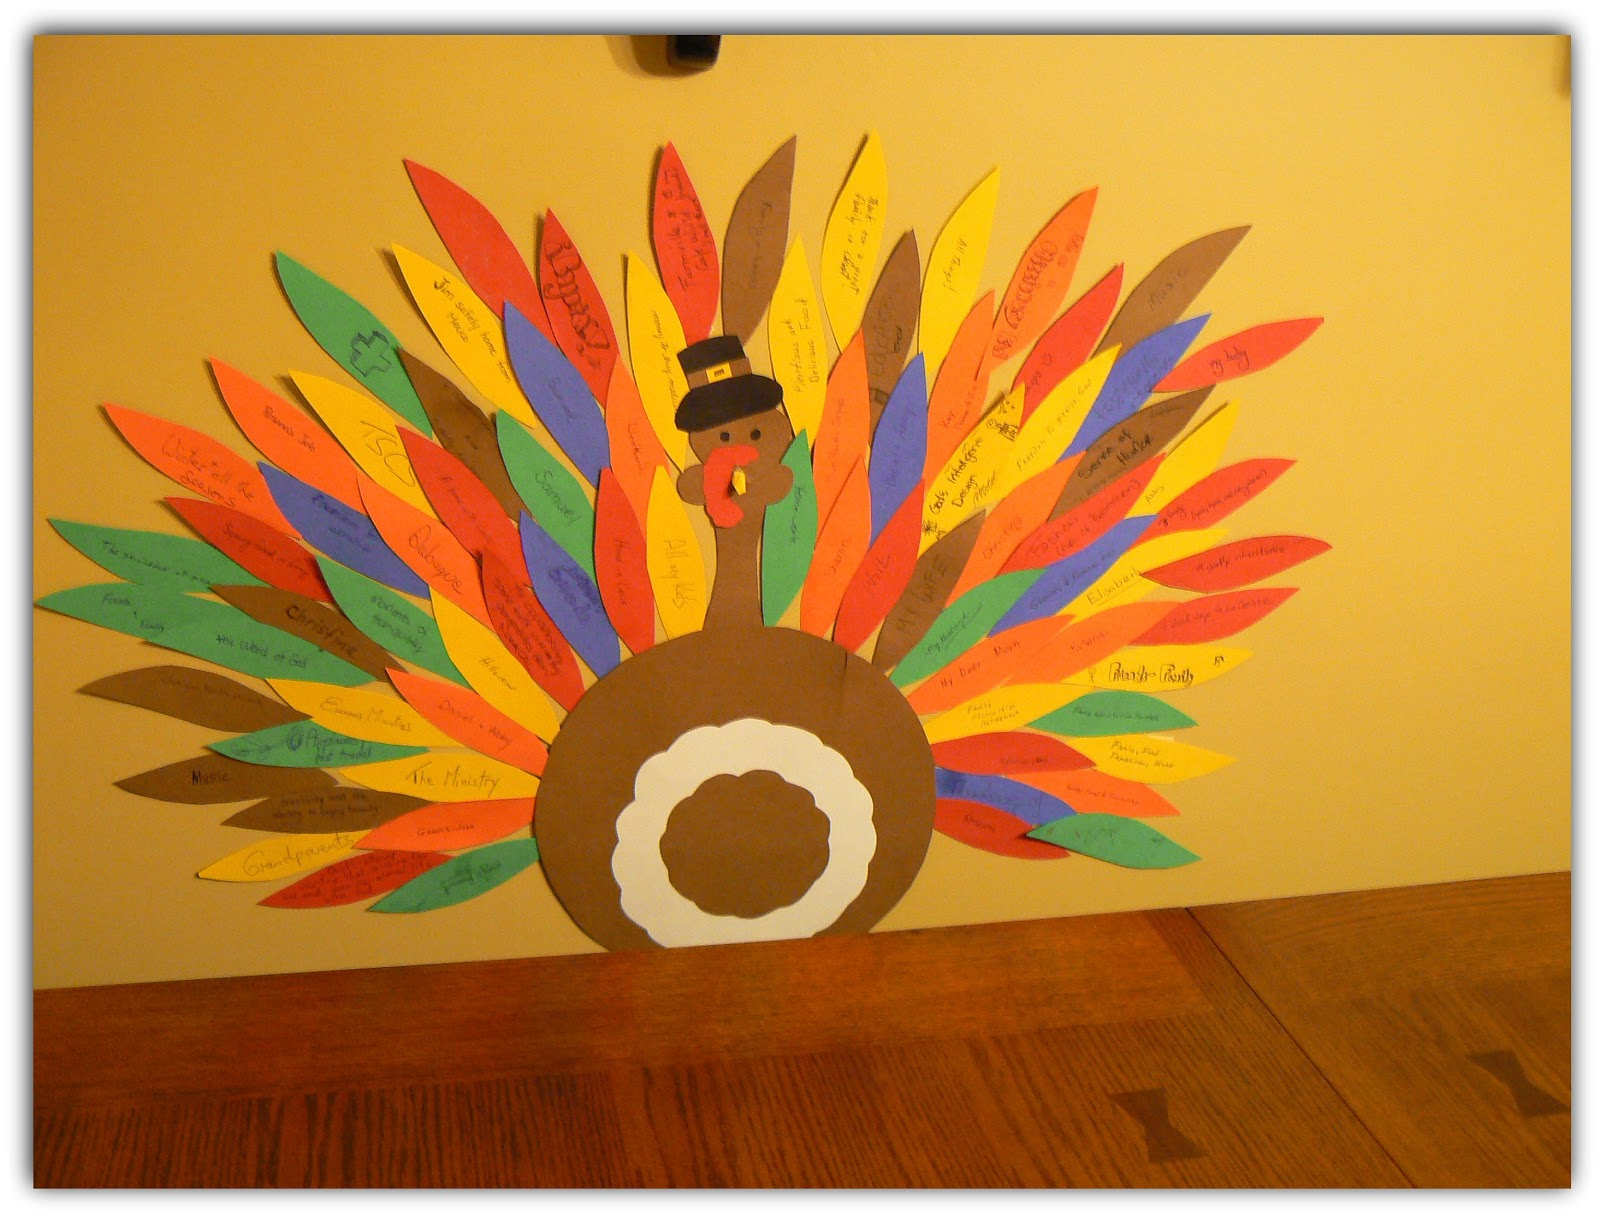 construction paper turkey 14/04/18 | @ construction paper turkey crafts for toddlers furniture plans is a good idea ★★ [ construction paper turkey crafts for toddlers ] make a quick wood projects (90+ millions of people visits.